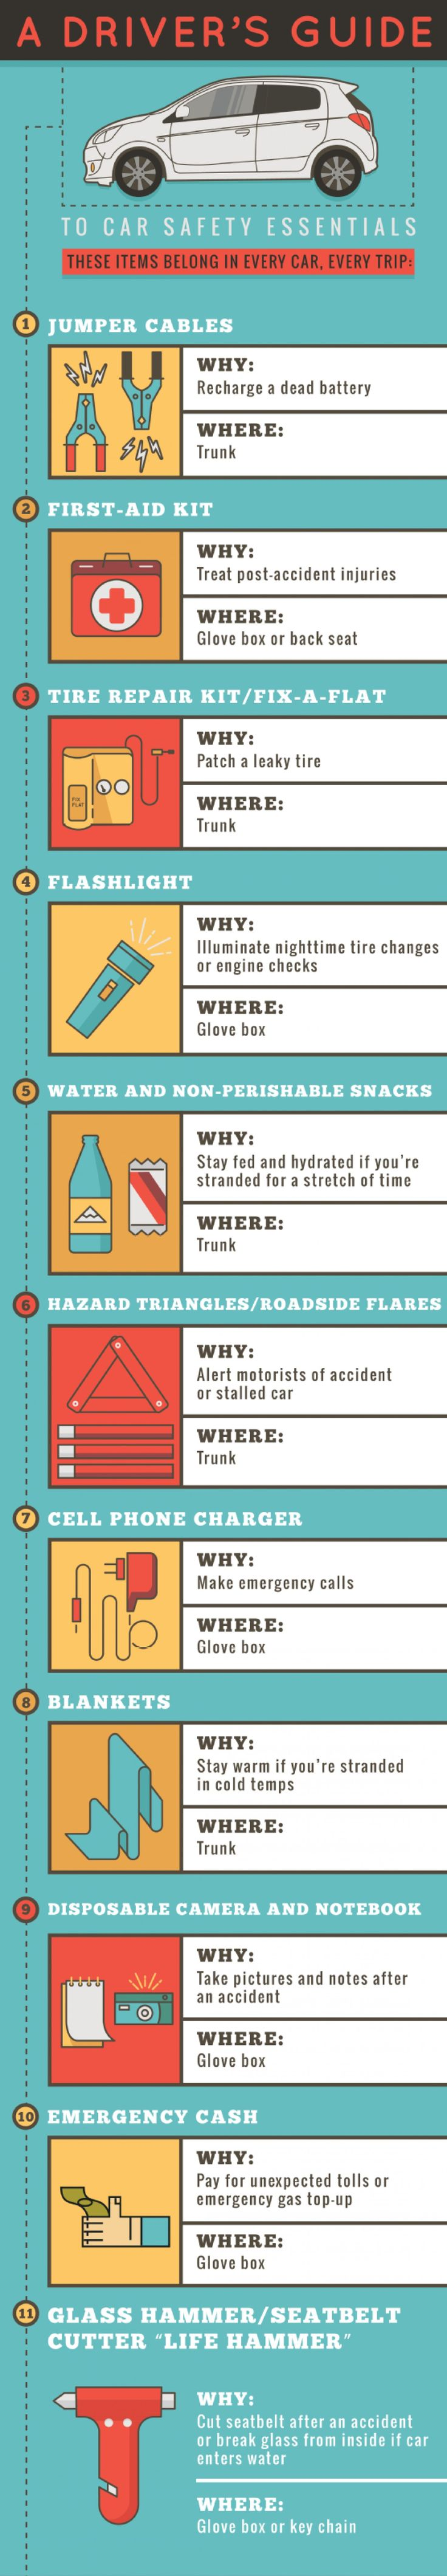 A Driver's Guide to Car Safety Essentials Infographic.